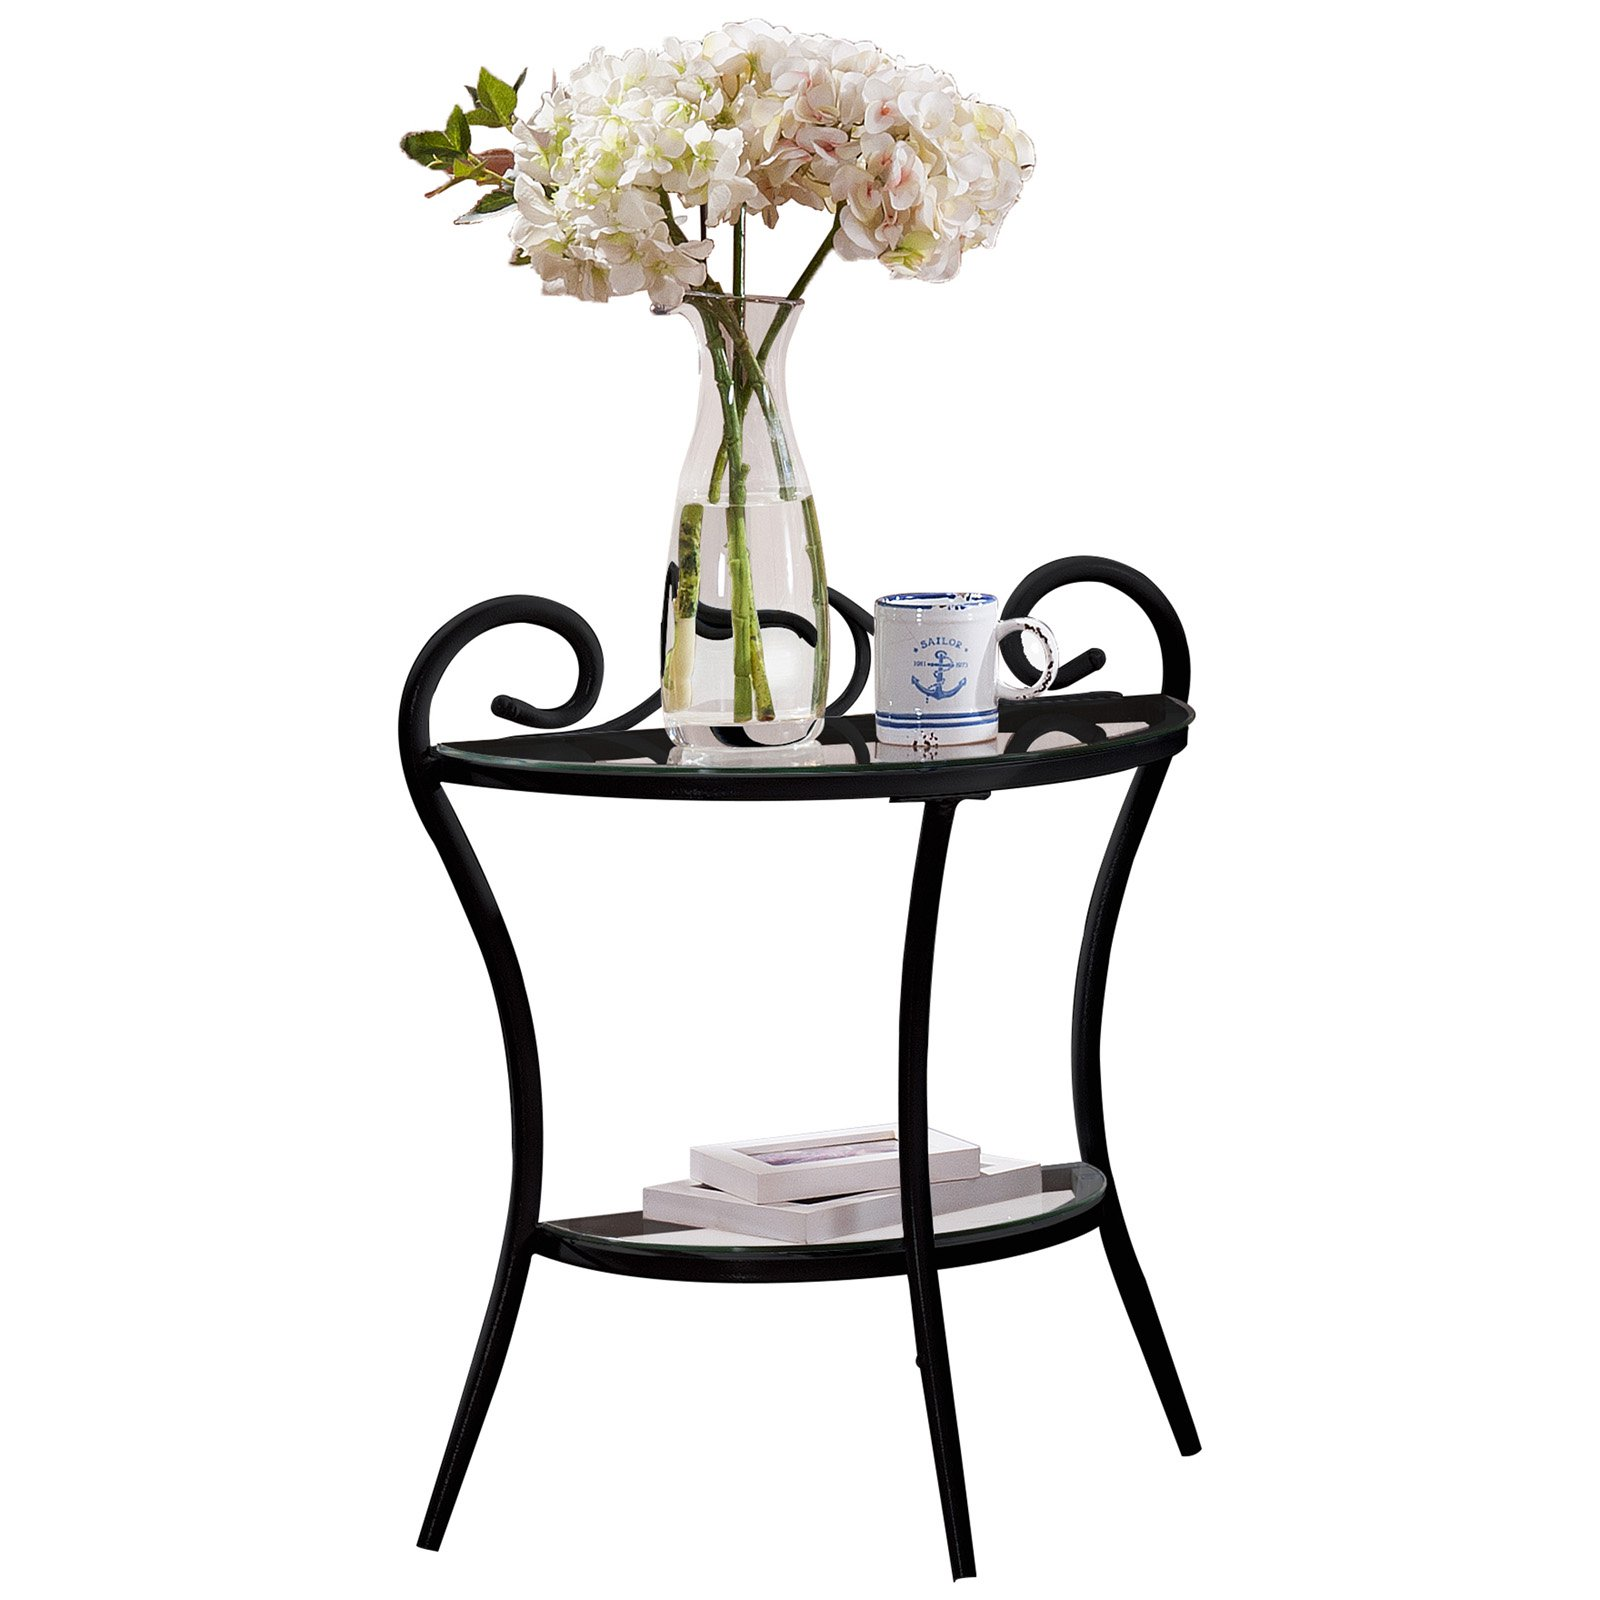 K&B Furniture Black Metal and Glass End Table